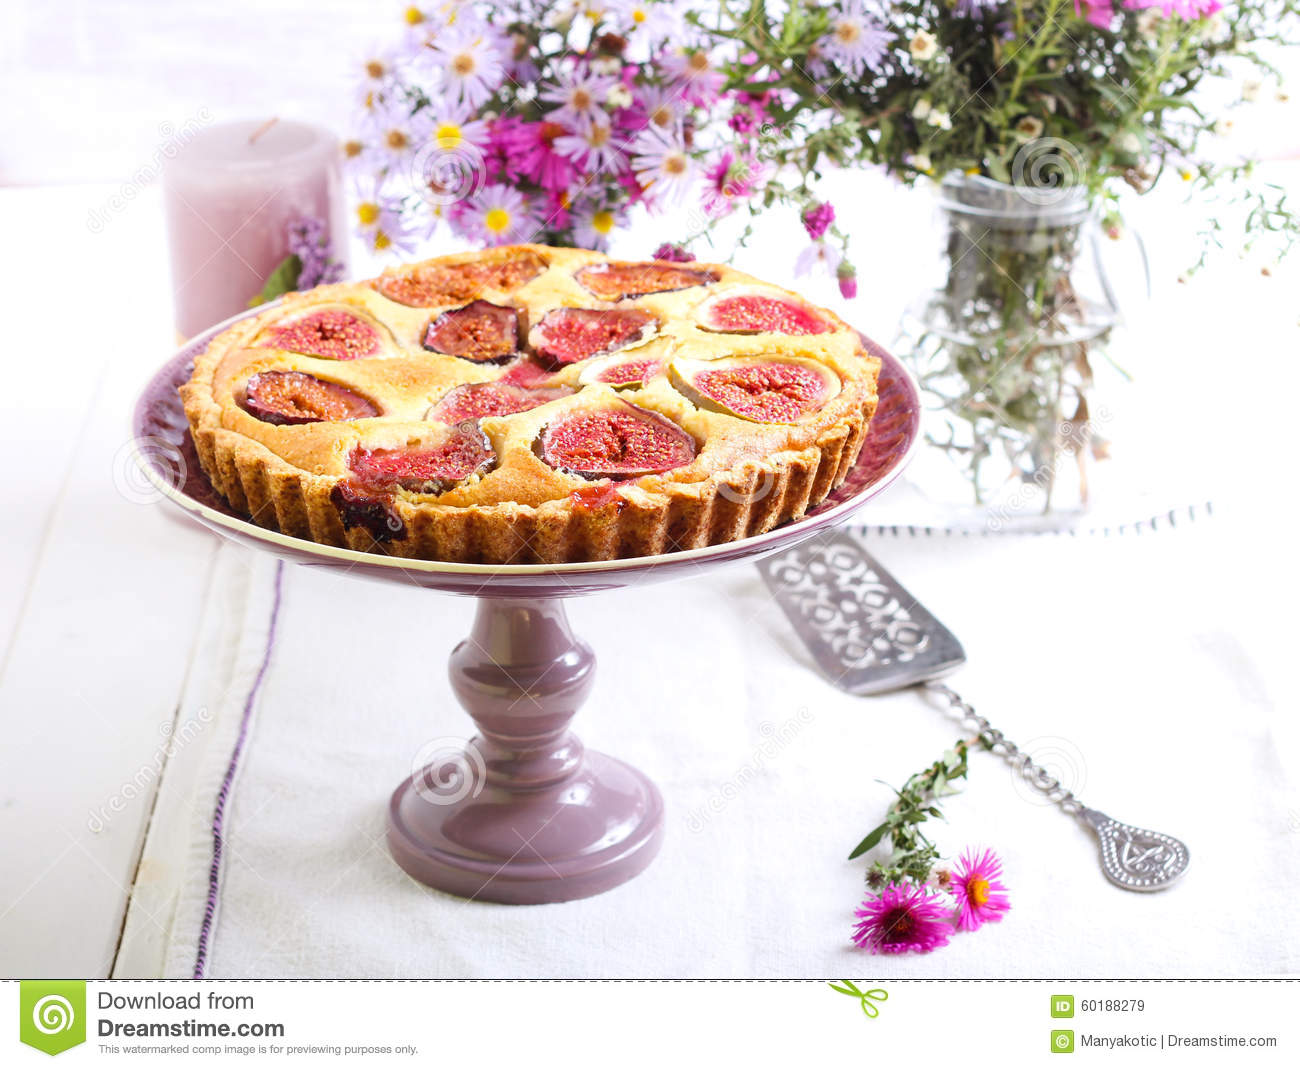 Almond and fig tart